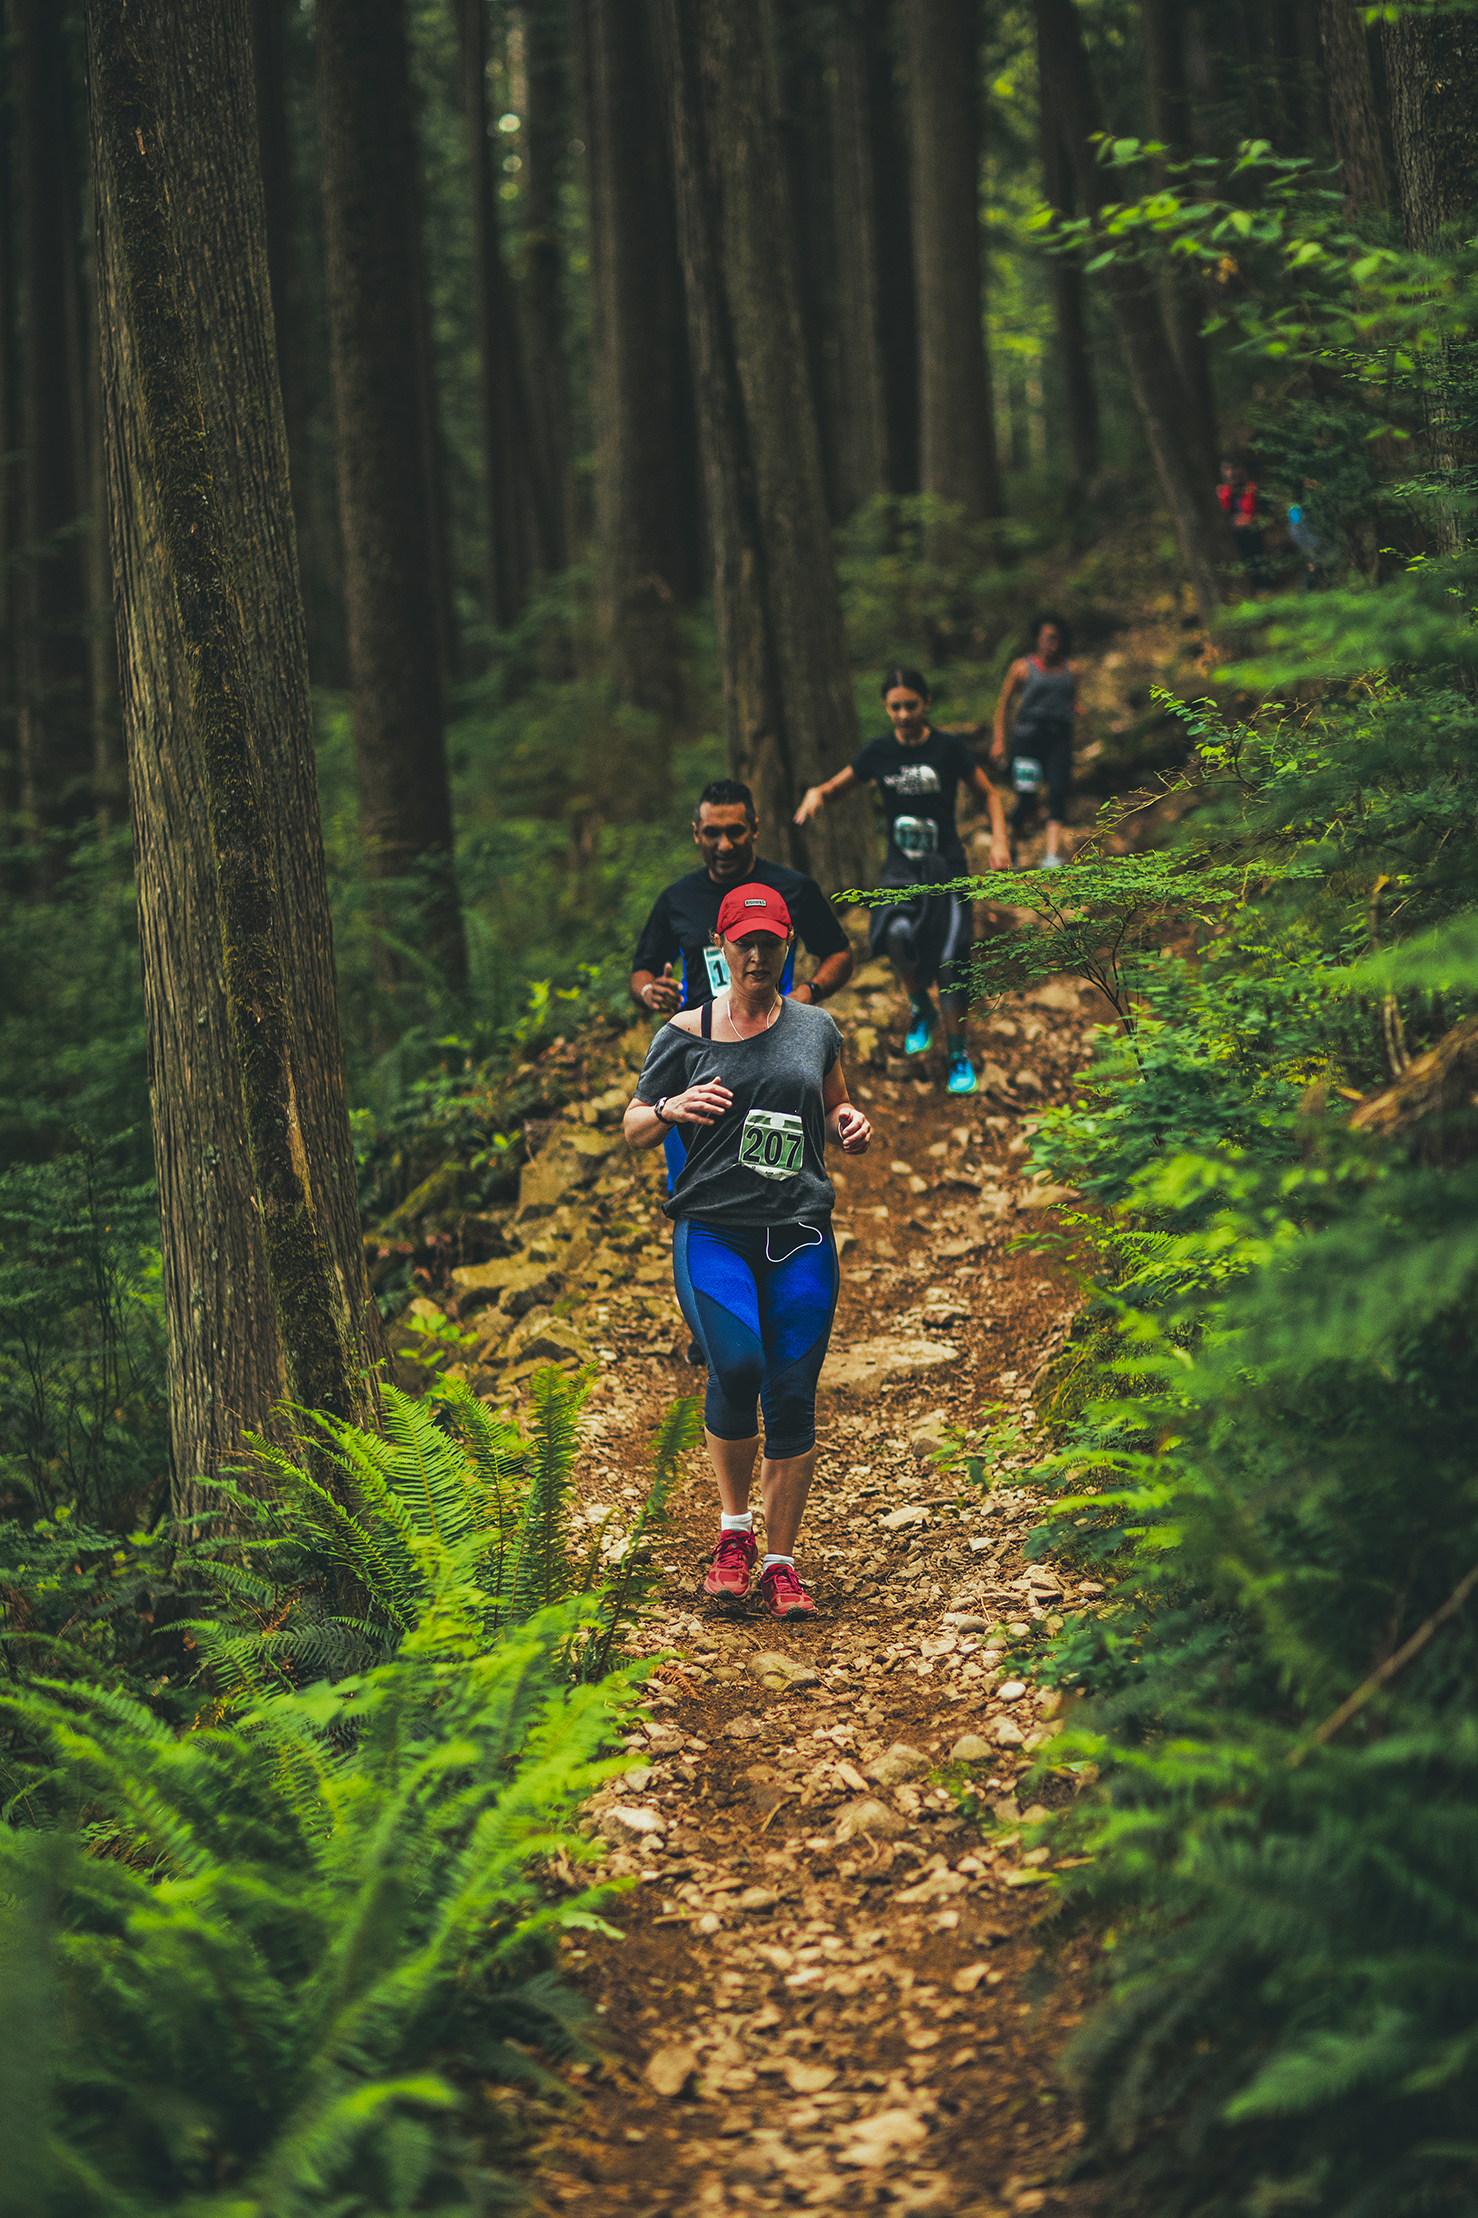 Fraser Valley Trail Races - Bear Mountain - IMG_2033 by Brice Ferre Studio - Vancouver Portrait Adventure and Athlete Photographer.jpg